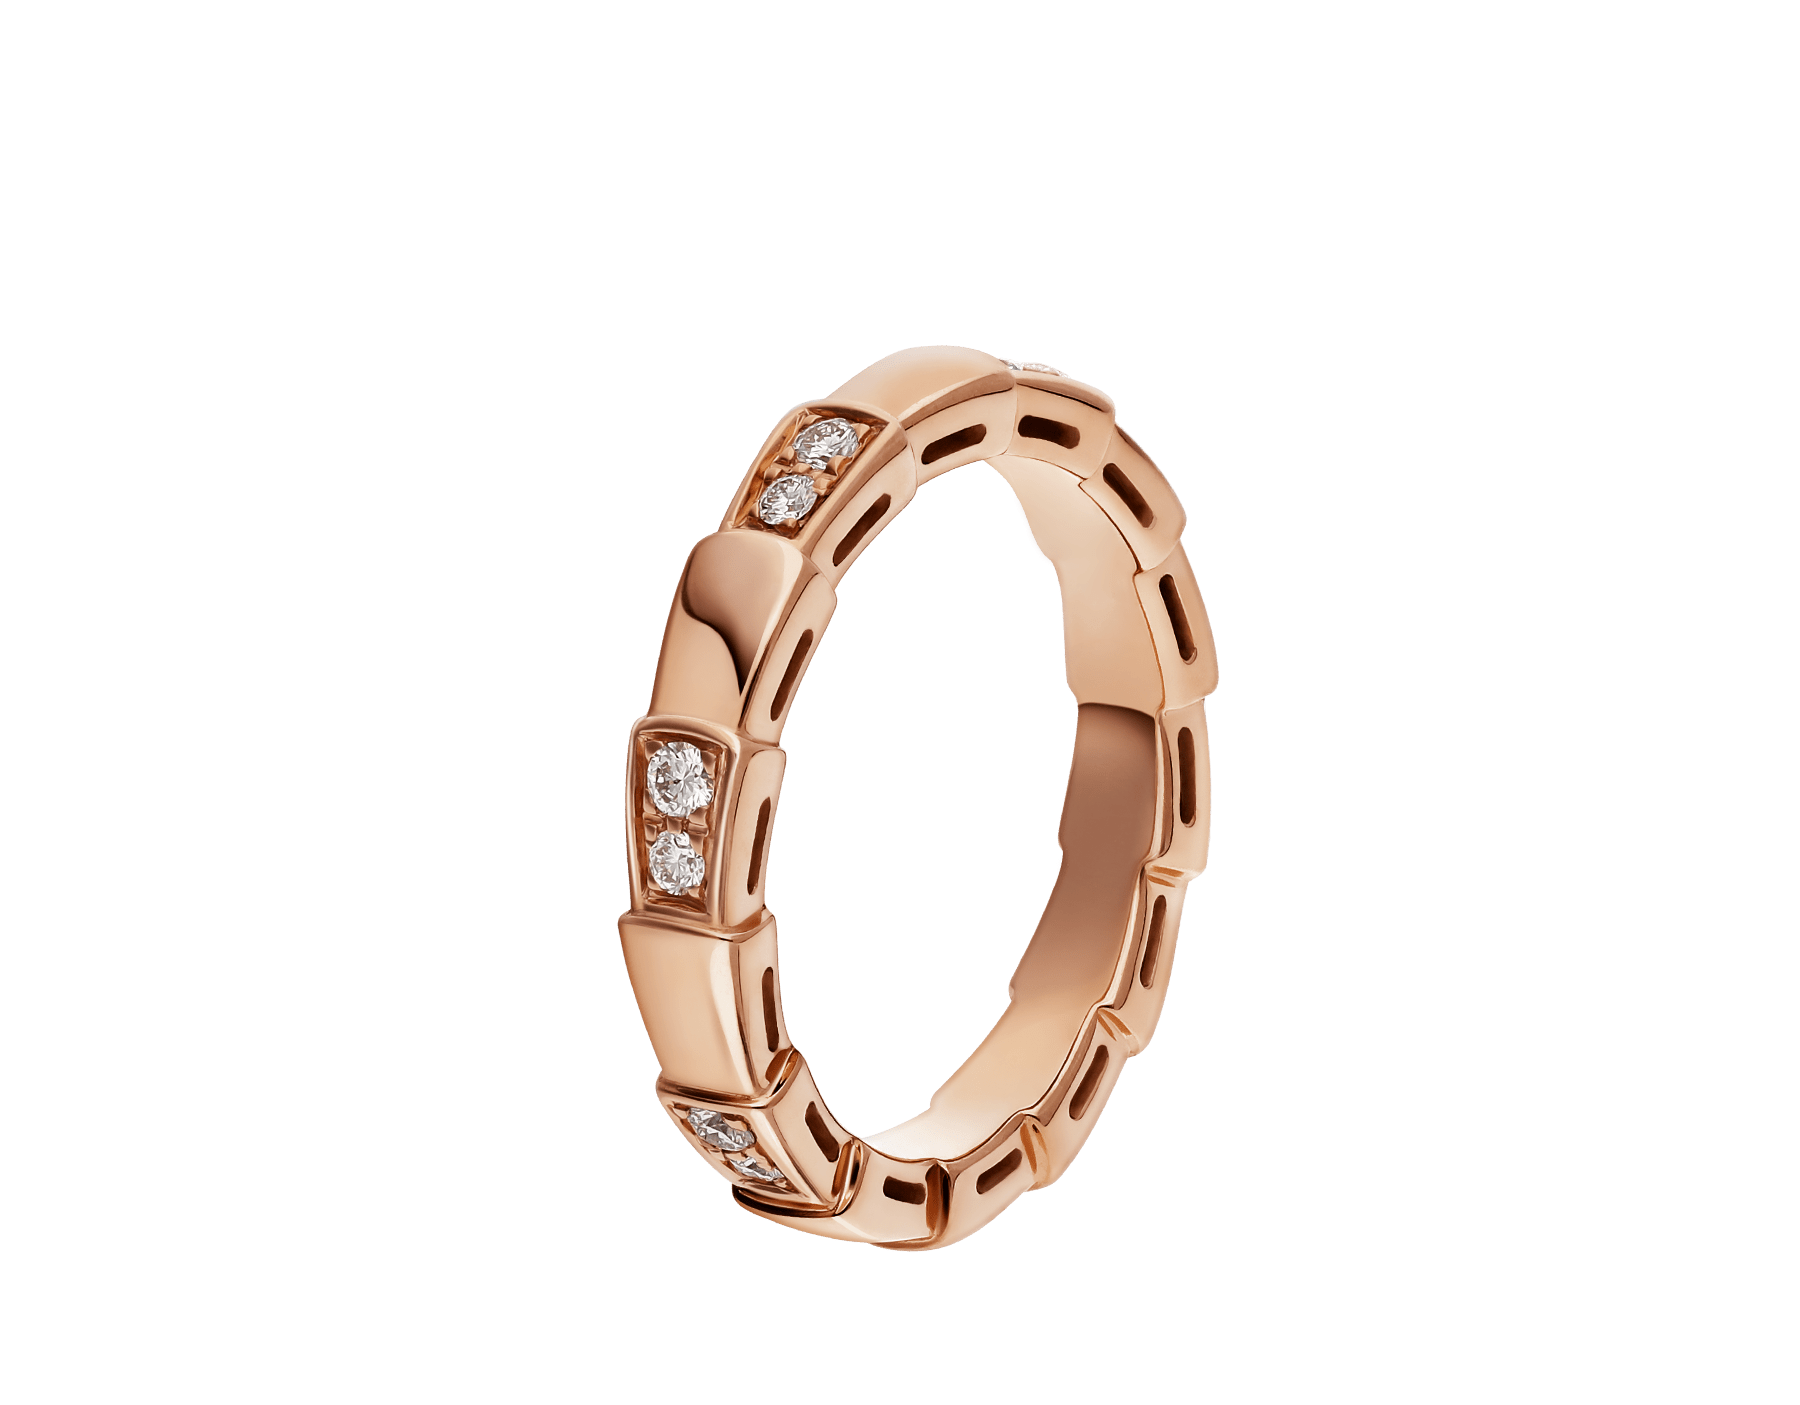 Serpenti Viper band ring in 18 kt rose gold set with demi pavé diamonds (0.25 ct). AN857896 image 1